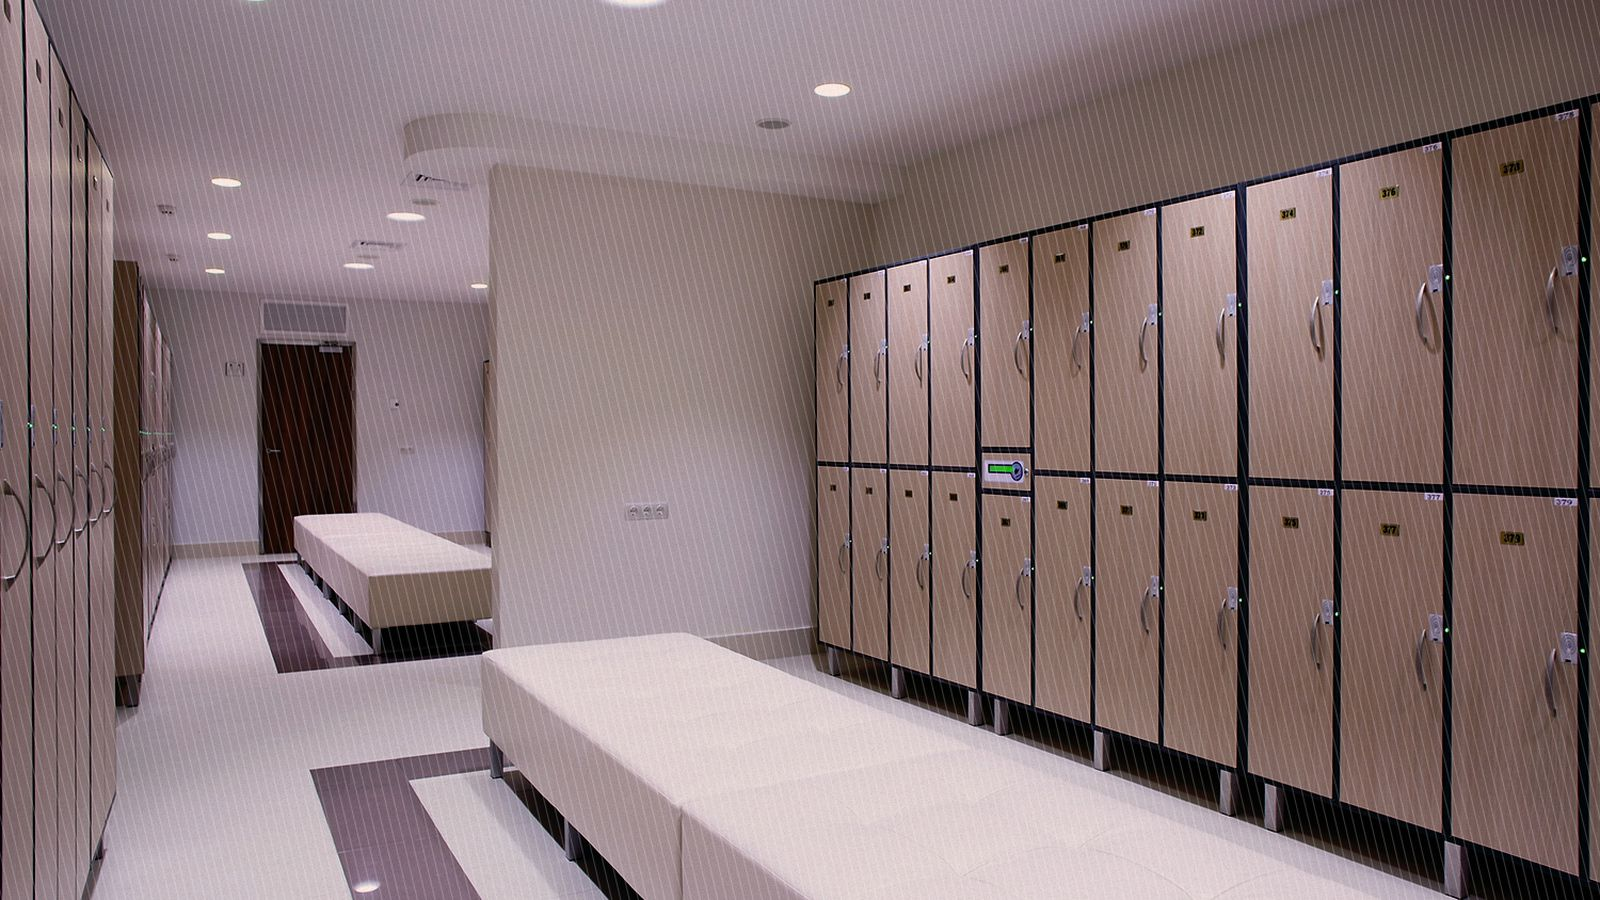 How naked is too a locker room investigation racked